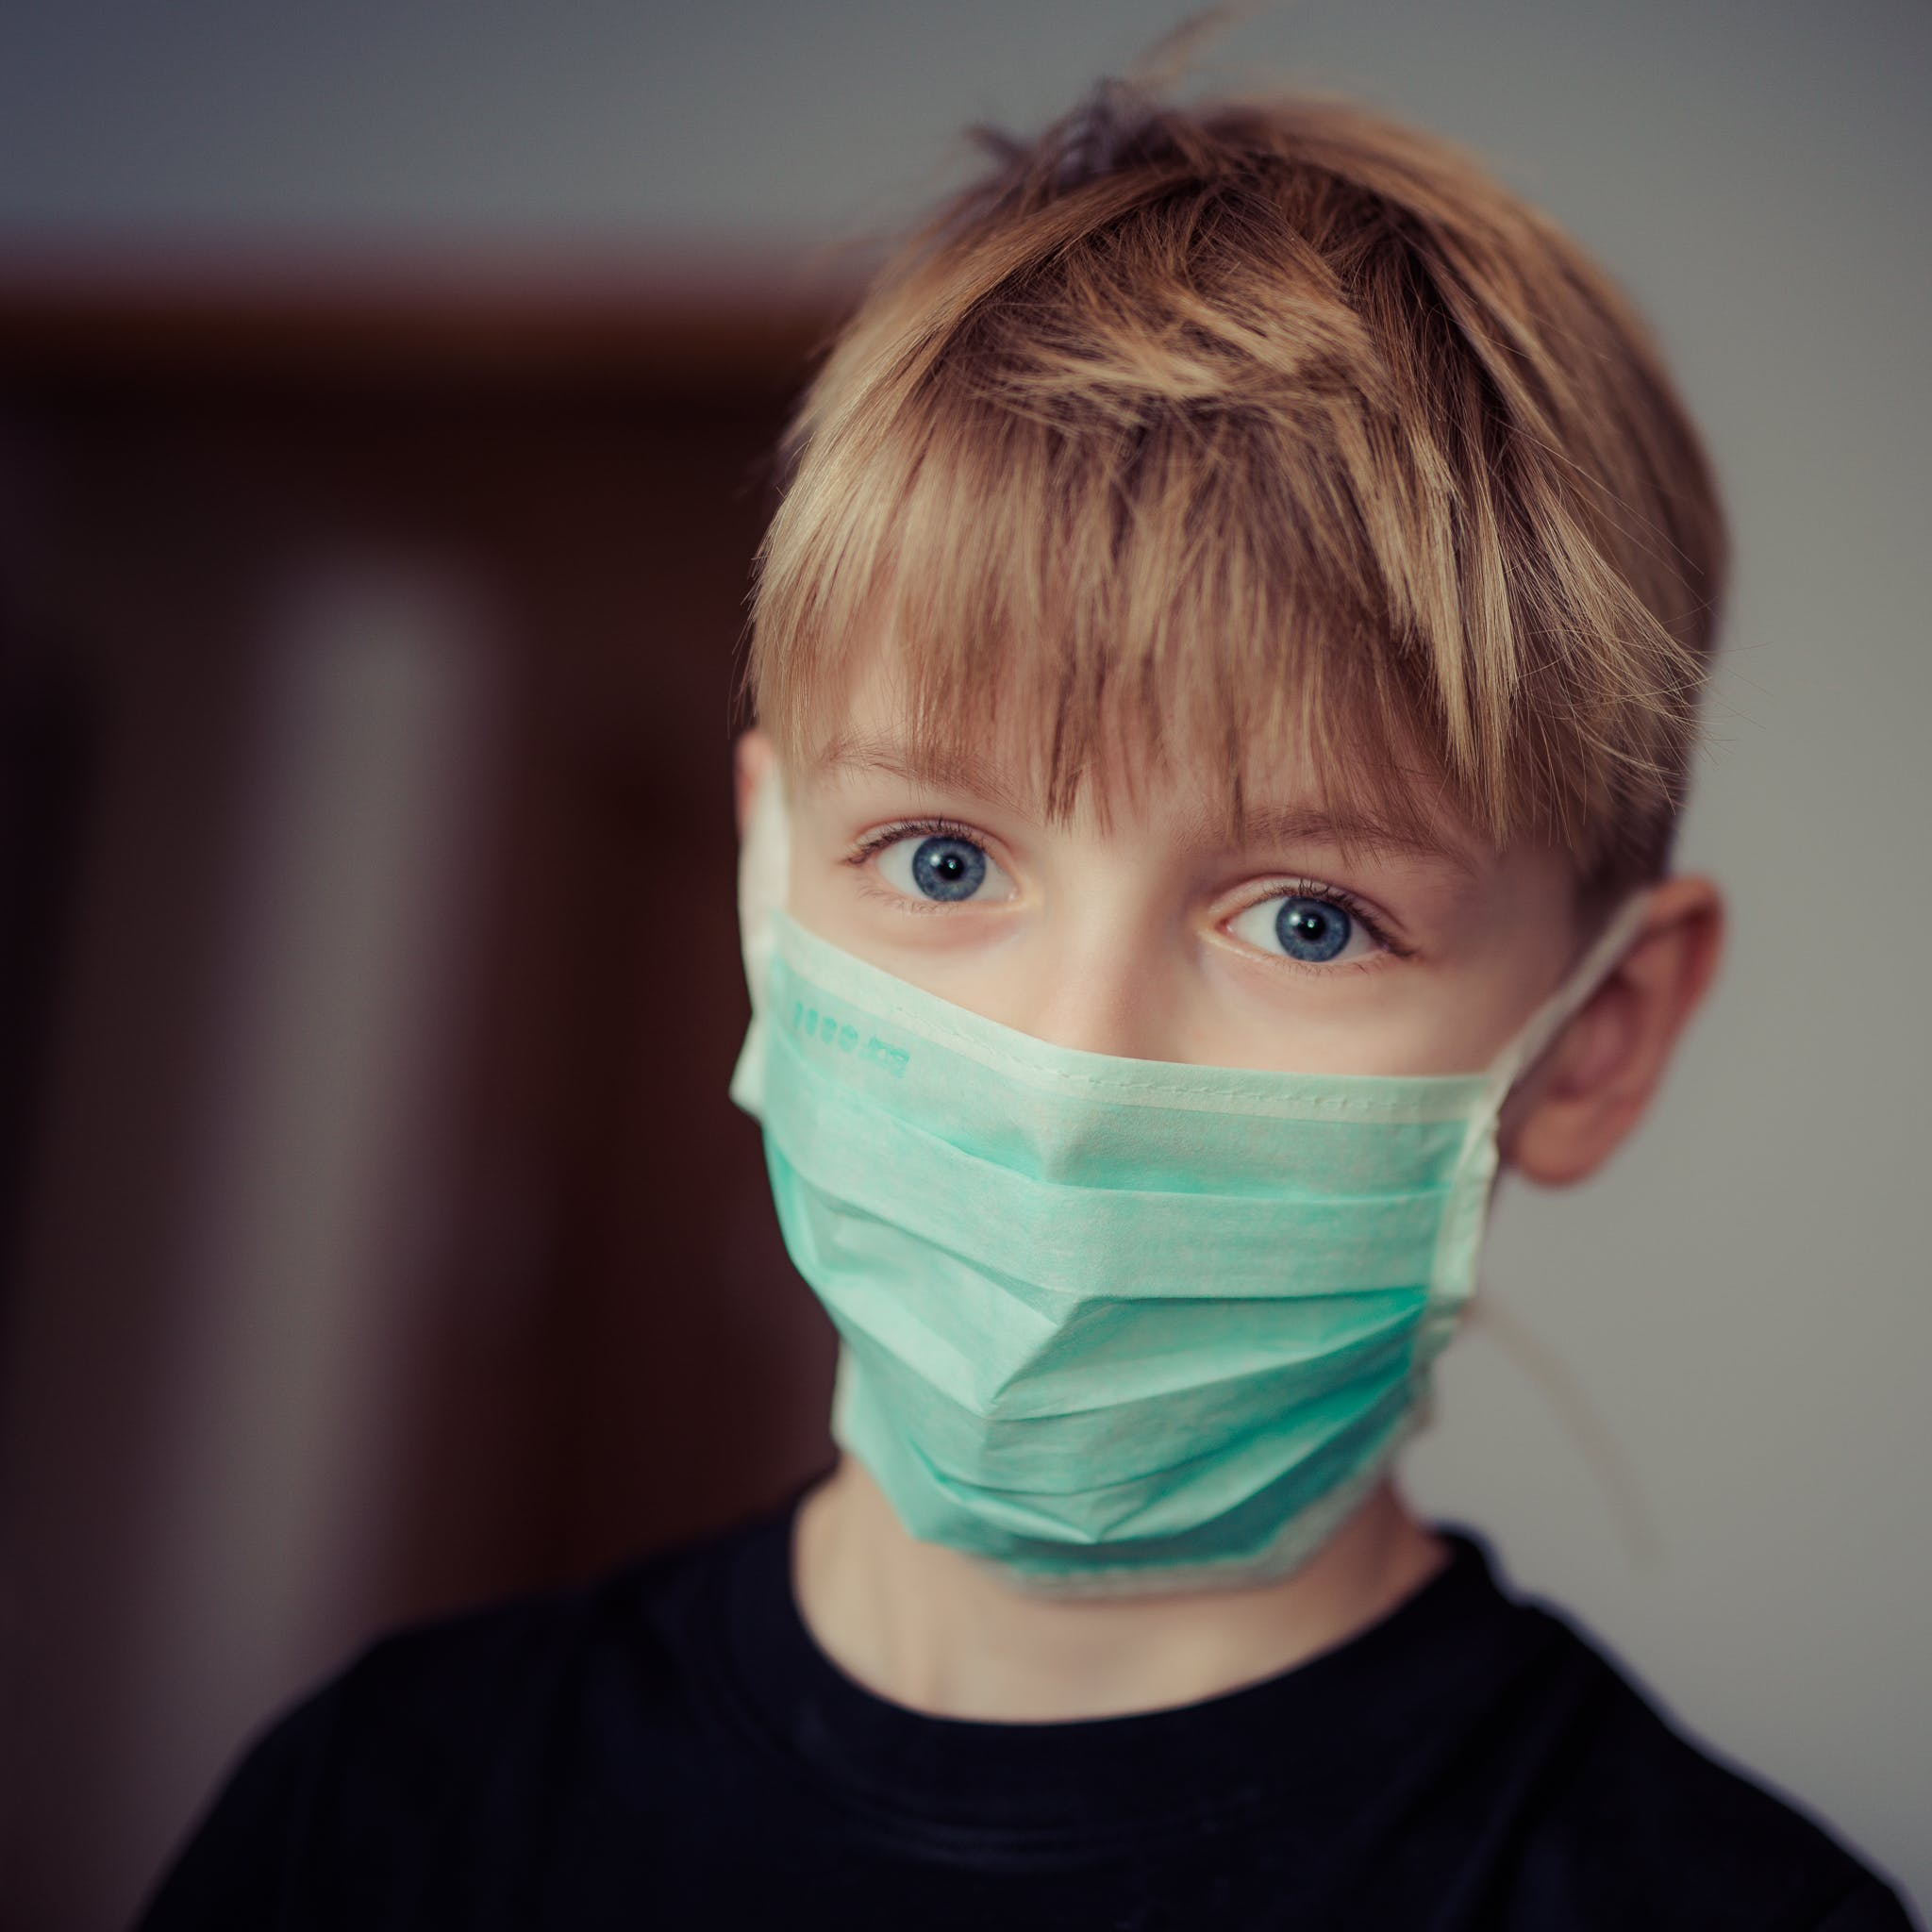 Boy Wearing Surgical Mask